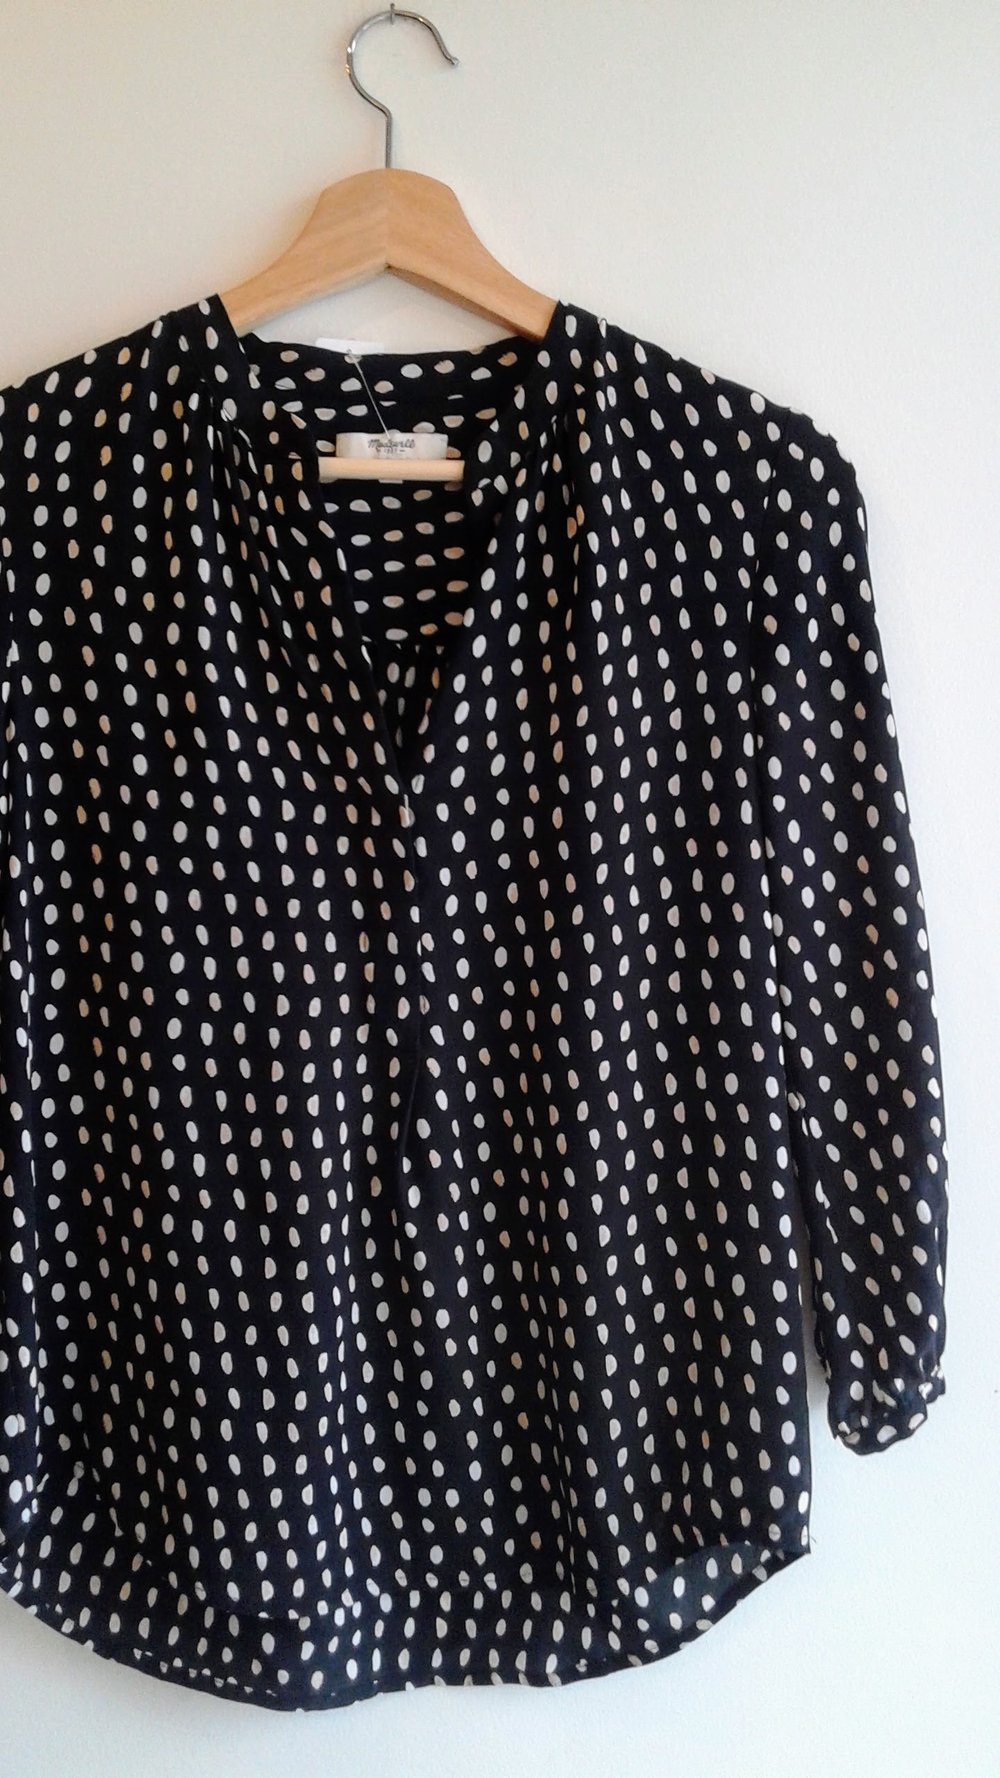 Madewell shirt; Size S, $28